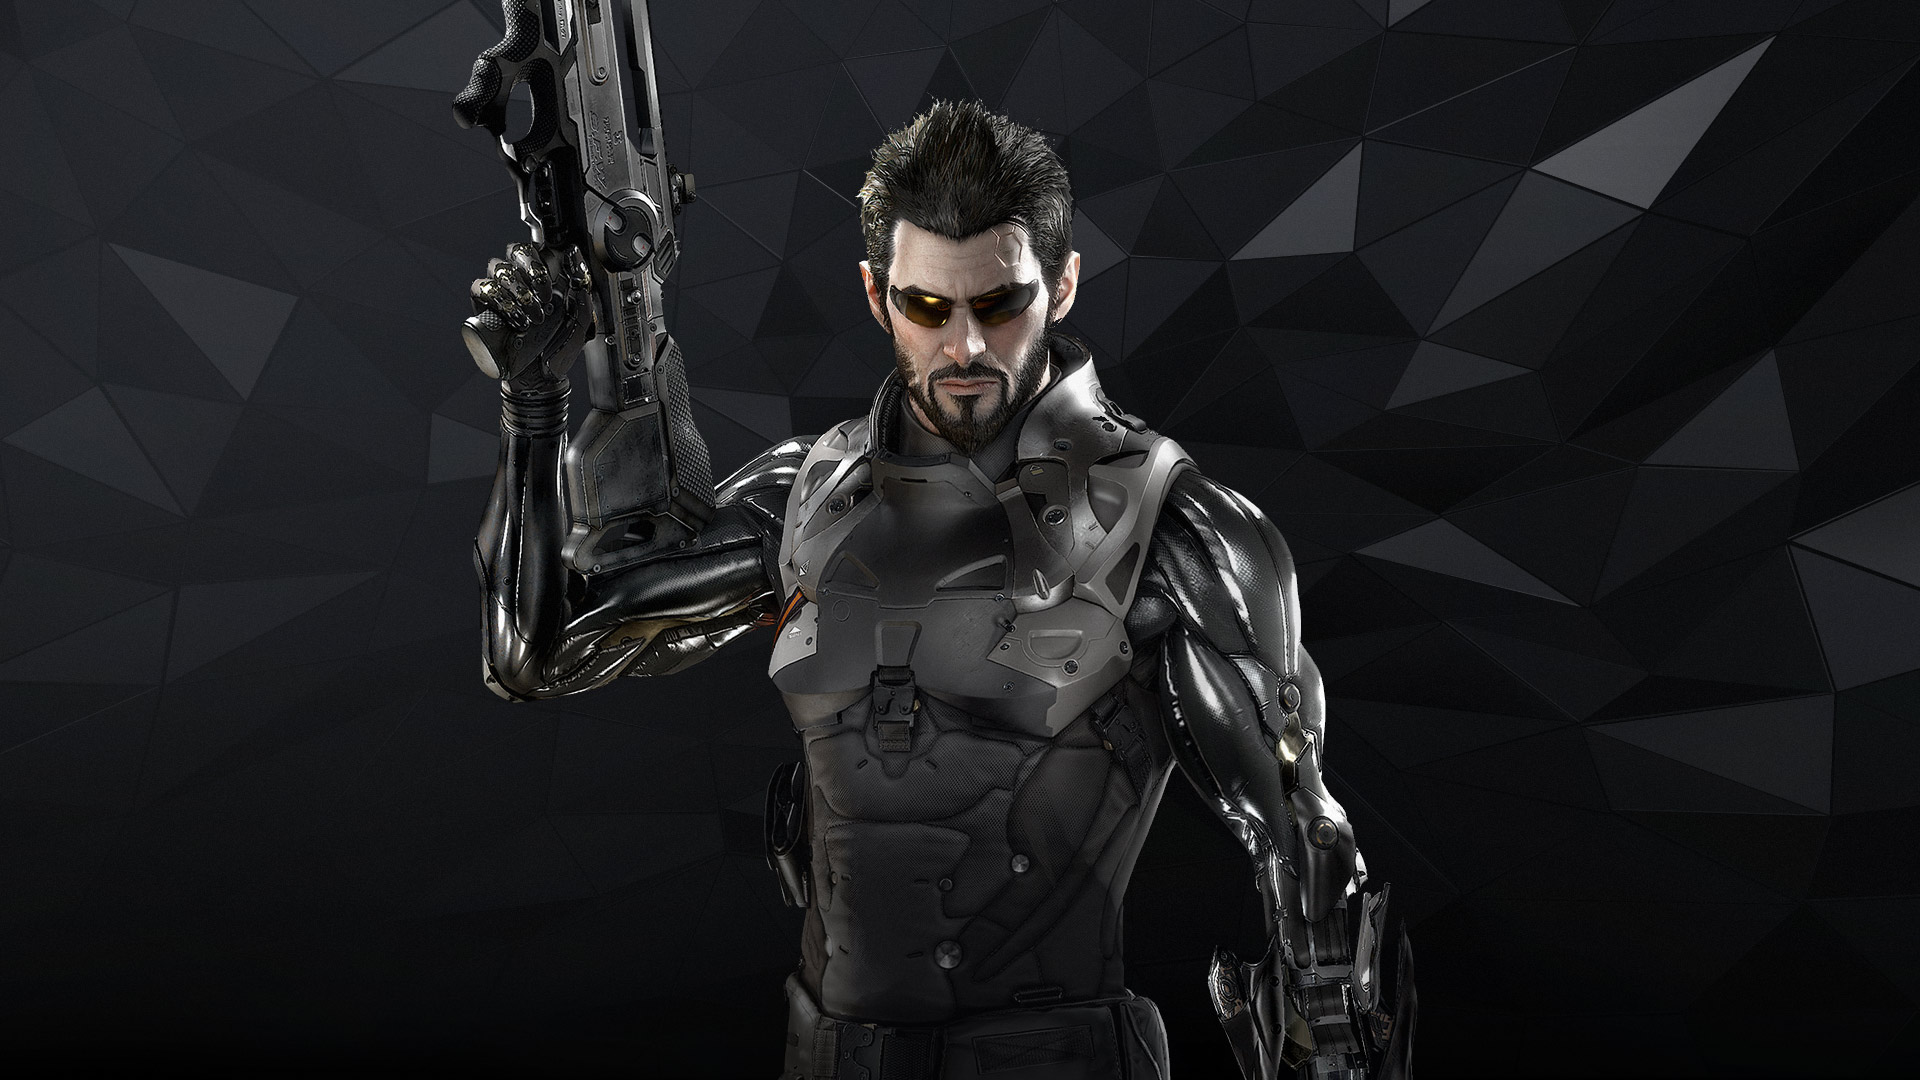 2016 Deus Ex Mankind Divided, HD Games, 4k Wallpapers